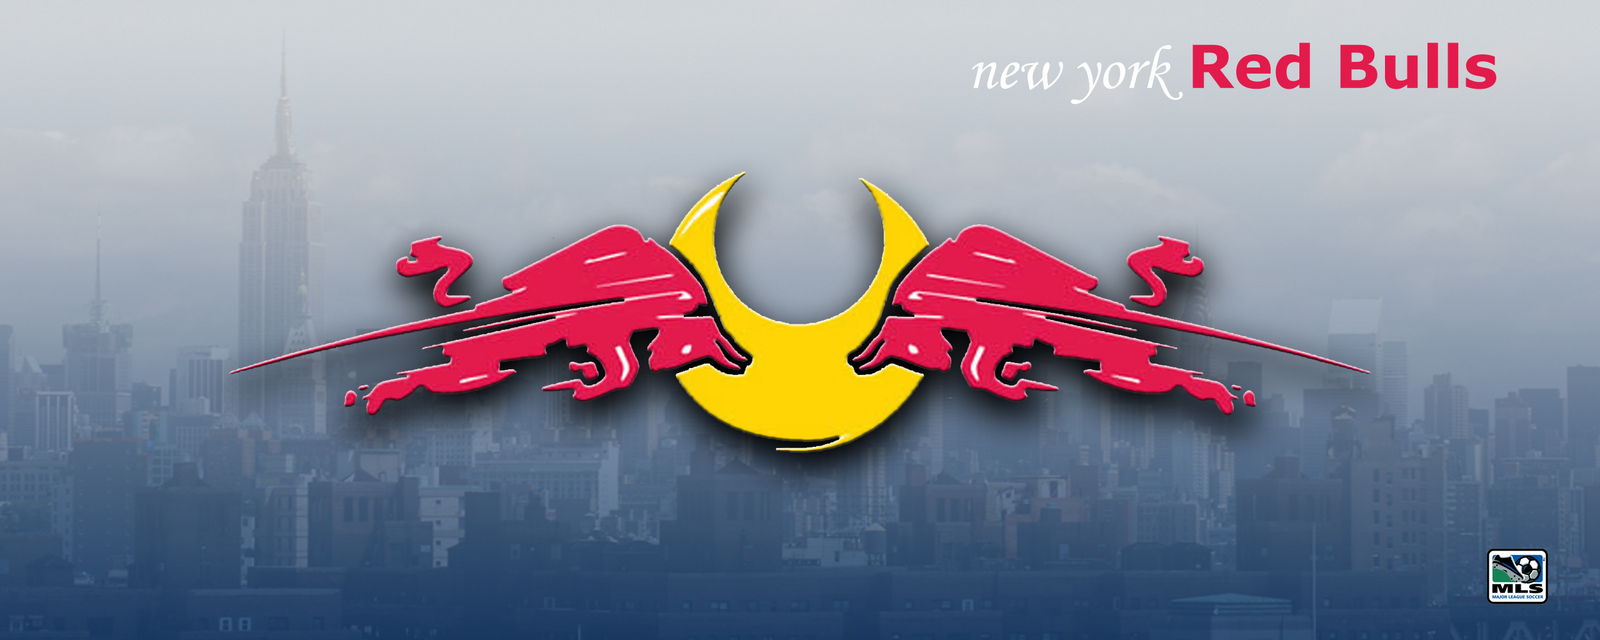 New York Red Bulls Football Wallpaper